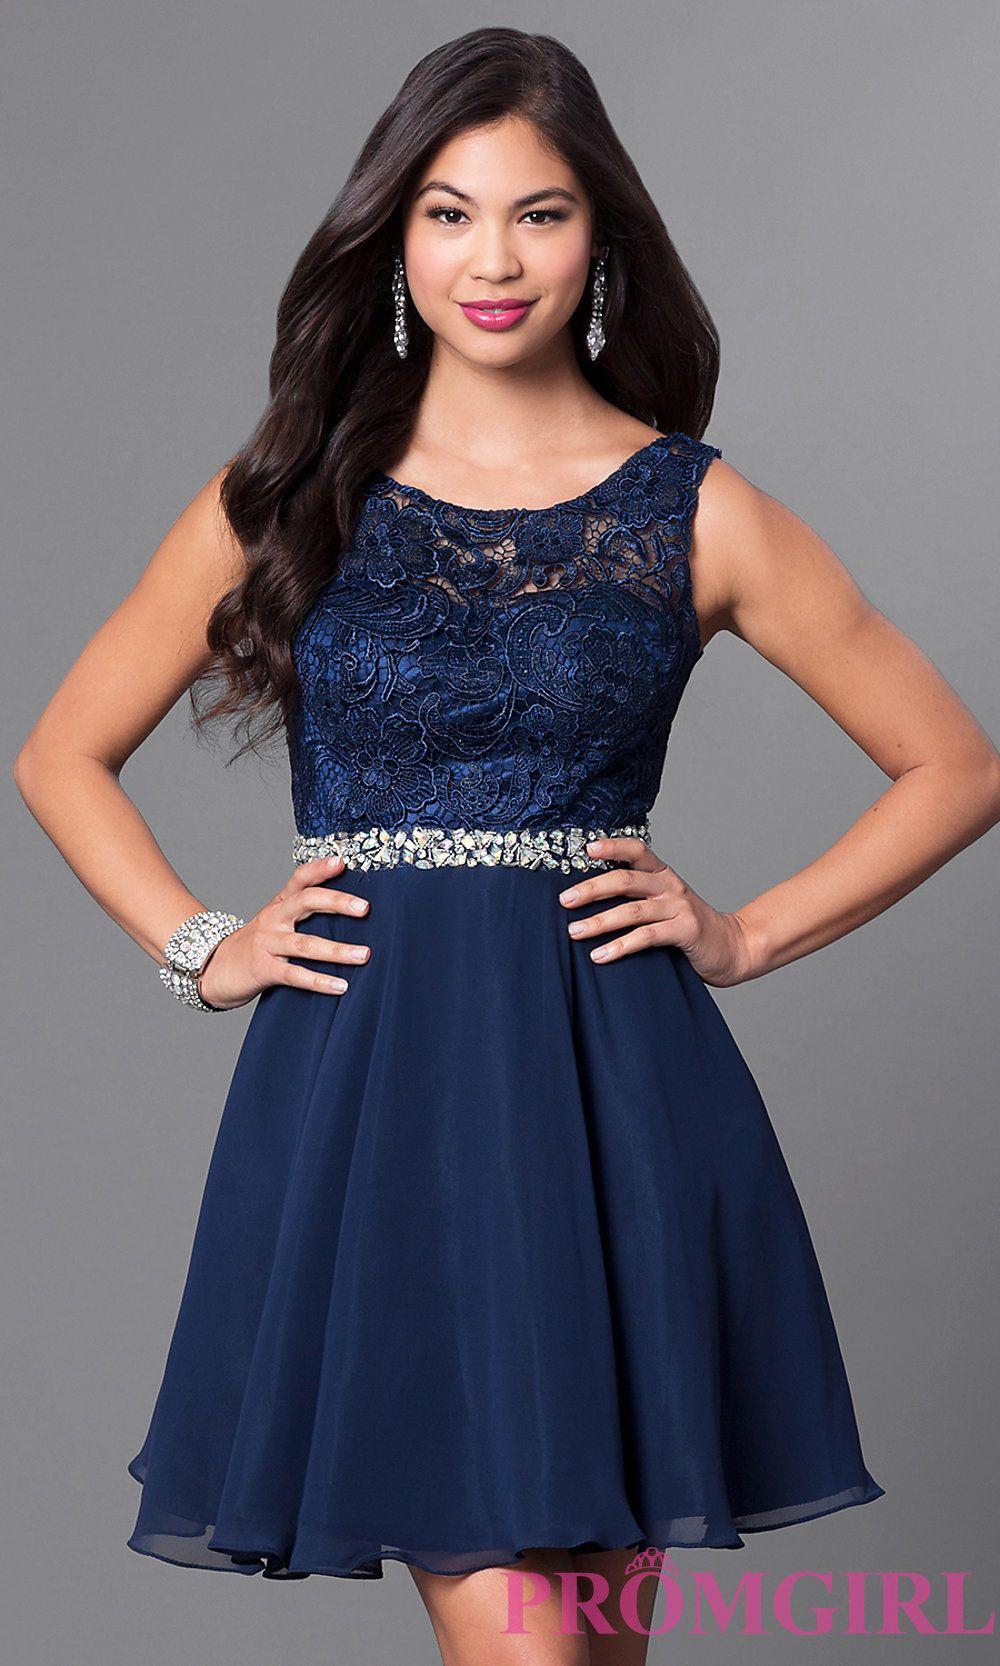 Short A-Line Homecoming Dress with Lace Bodice | Homecoming 2016 ...